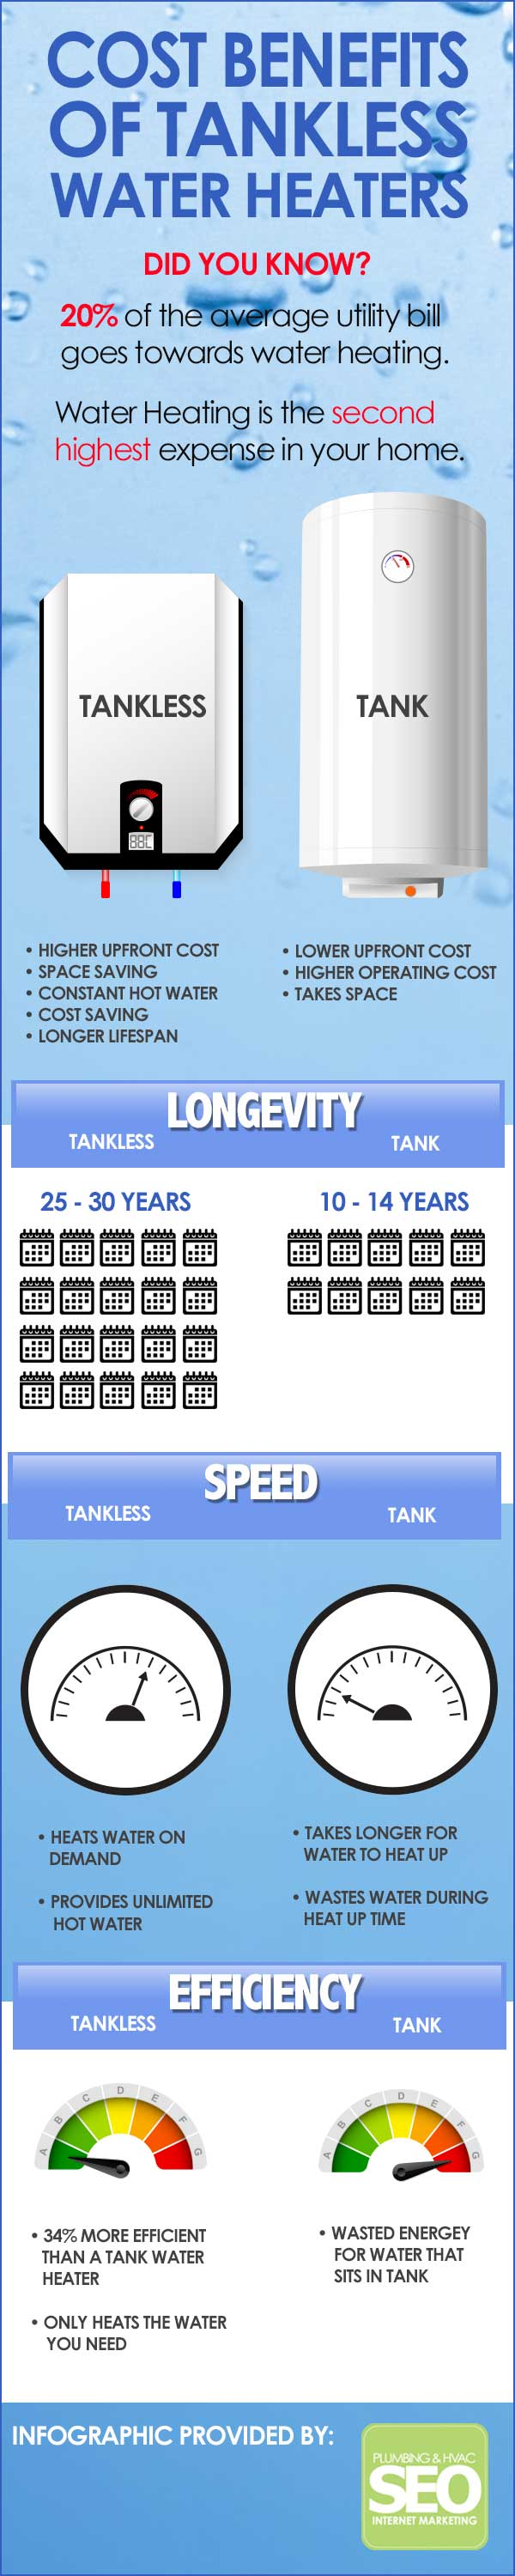 The Cost Benefits Of Tankless Water Heaters Infographic